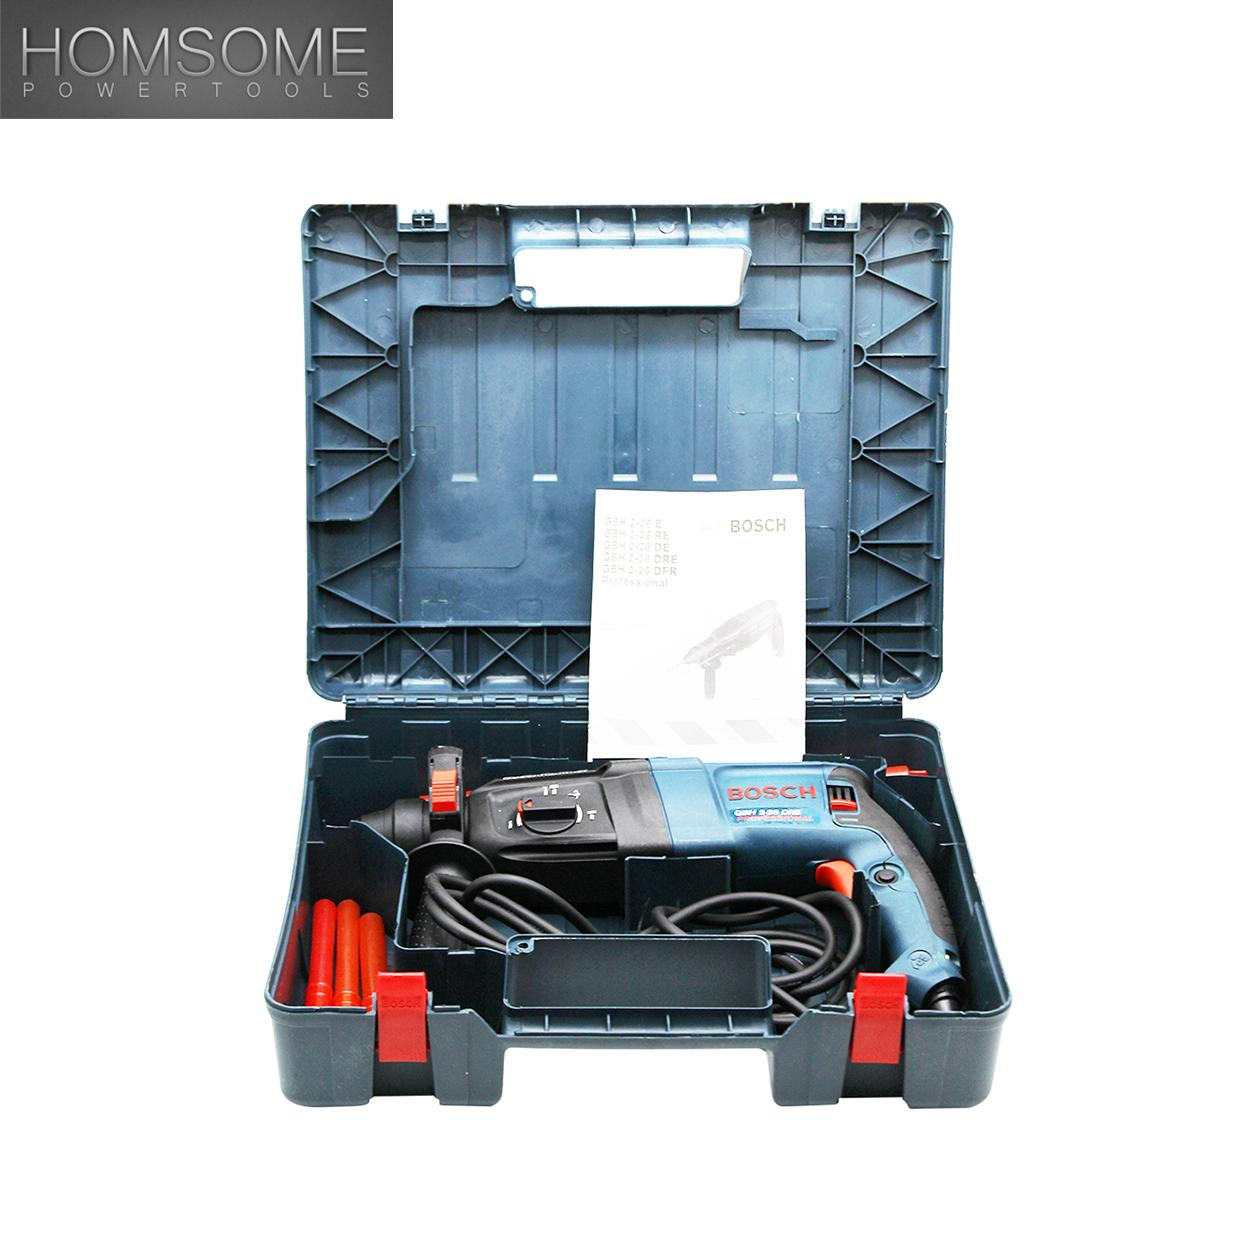 Professional Gbh 2-26 Dre Rotary Hammer By Homsome Bag.